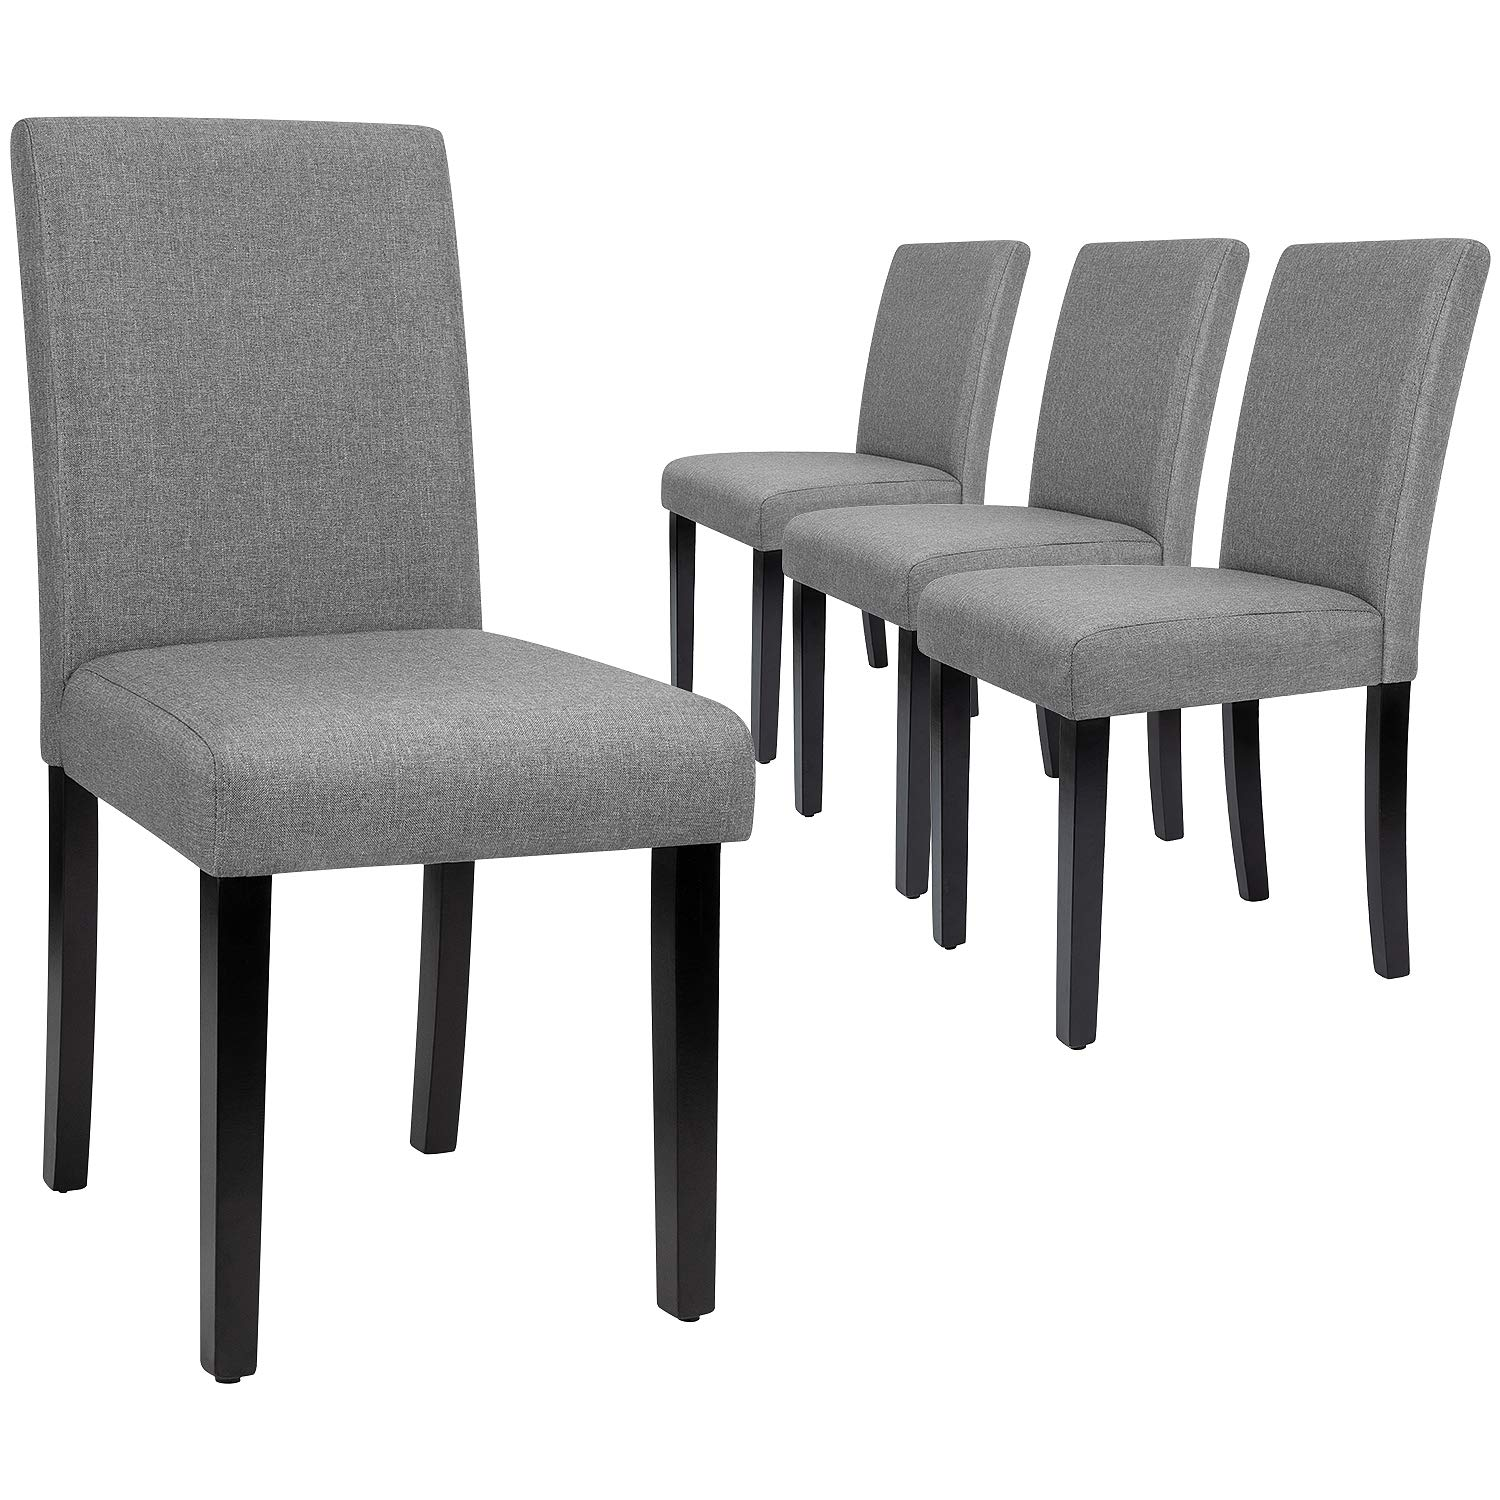 Furmax Dining Chairs Urban Style Fabric Parson Chairs Kitchen Livng Room Armless Side Chair with Solid Wood Legs Set of 4 (Gray) by Furmax